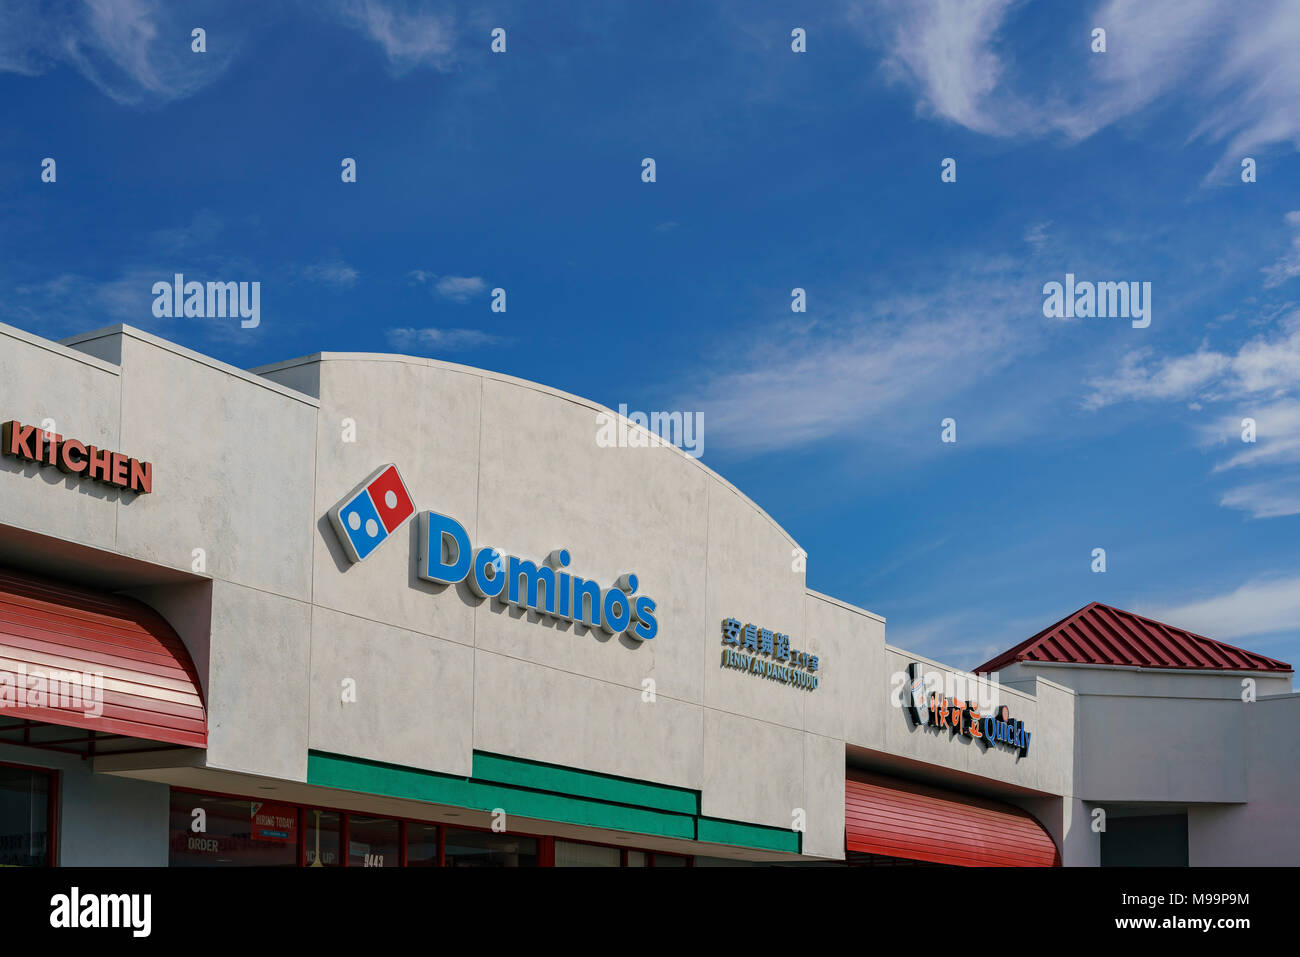 Los Angeles, MAR 8: Exterior view of the Dominos pizza sign on MAR 8 ...